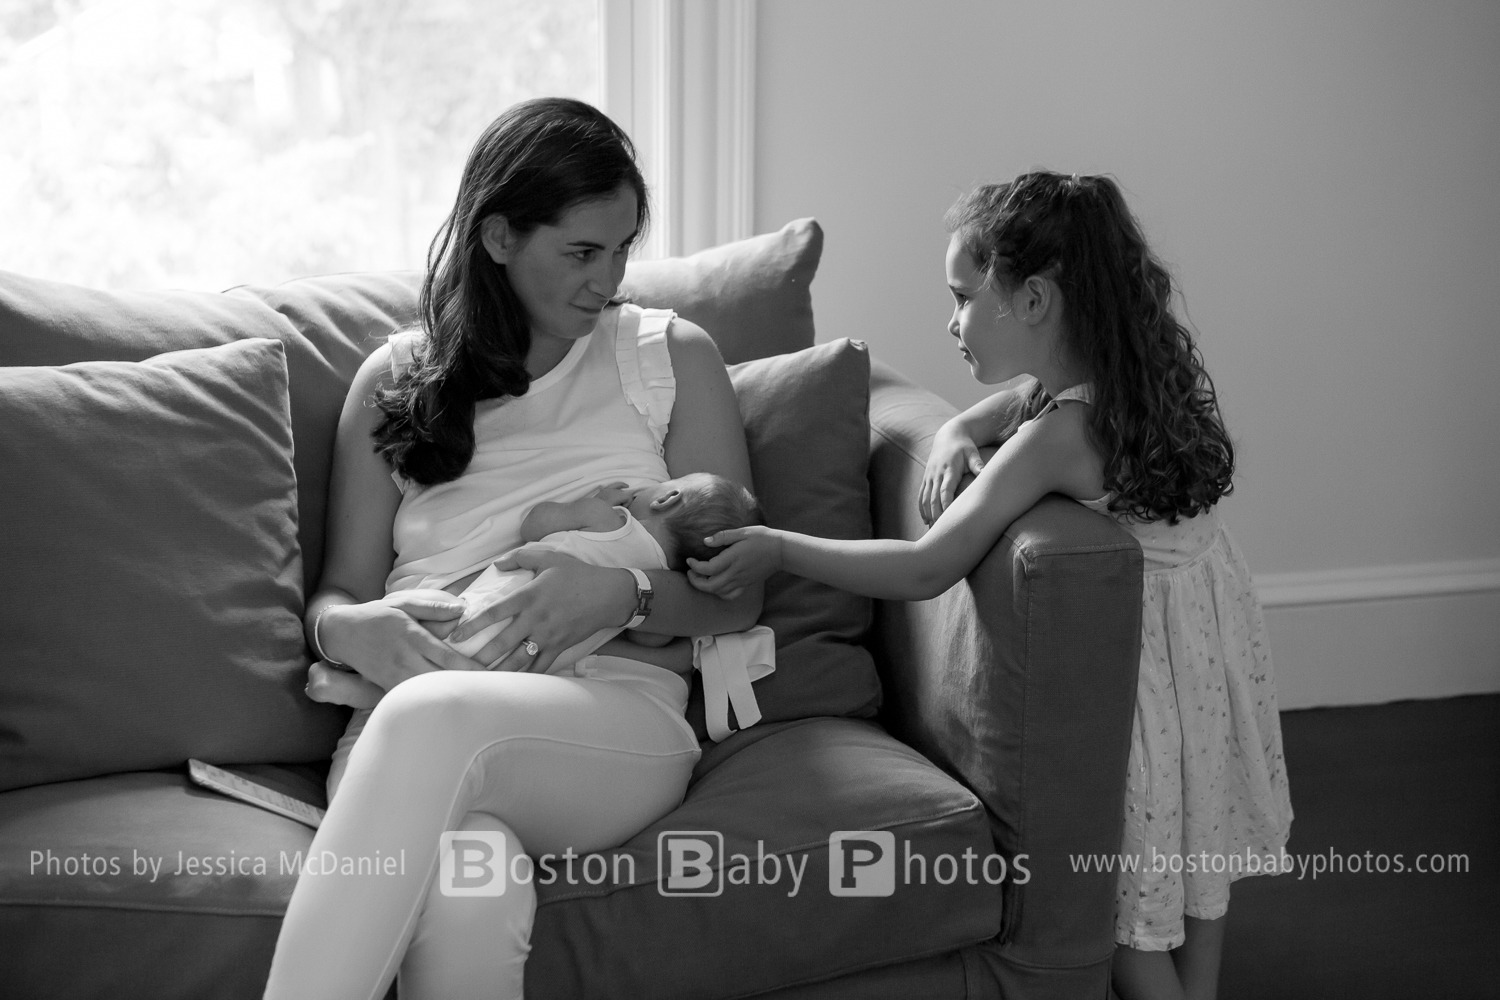 Newton, MA: A new baby boy joins the little ladies